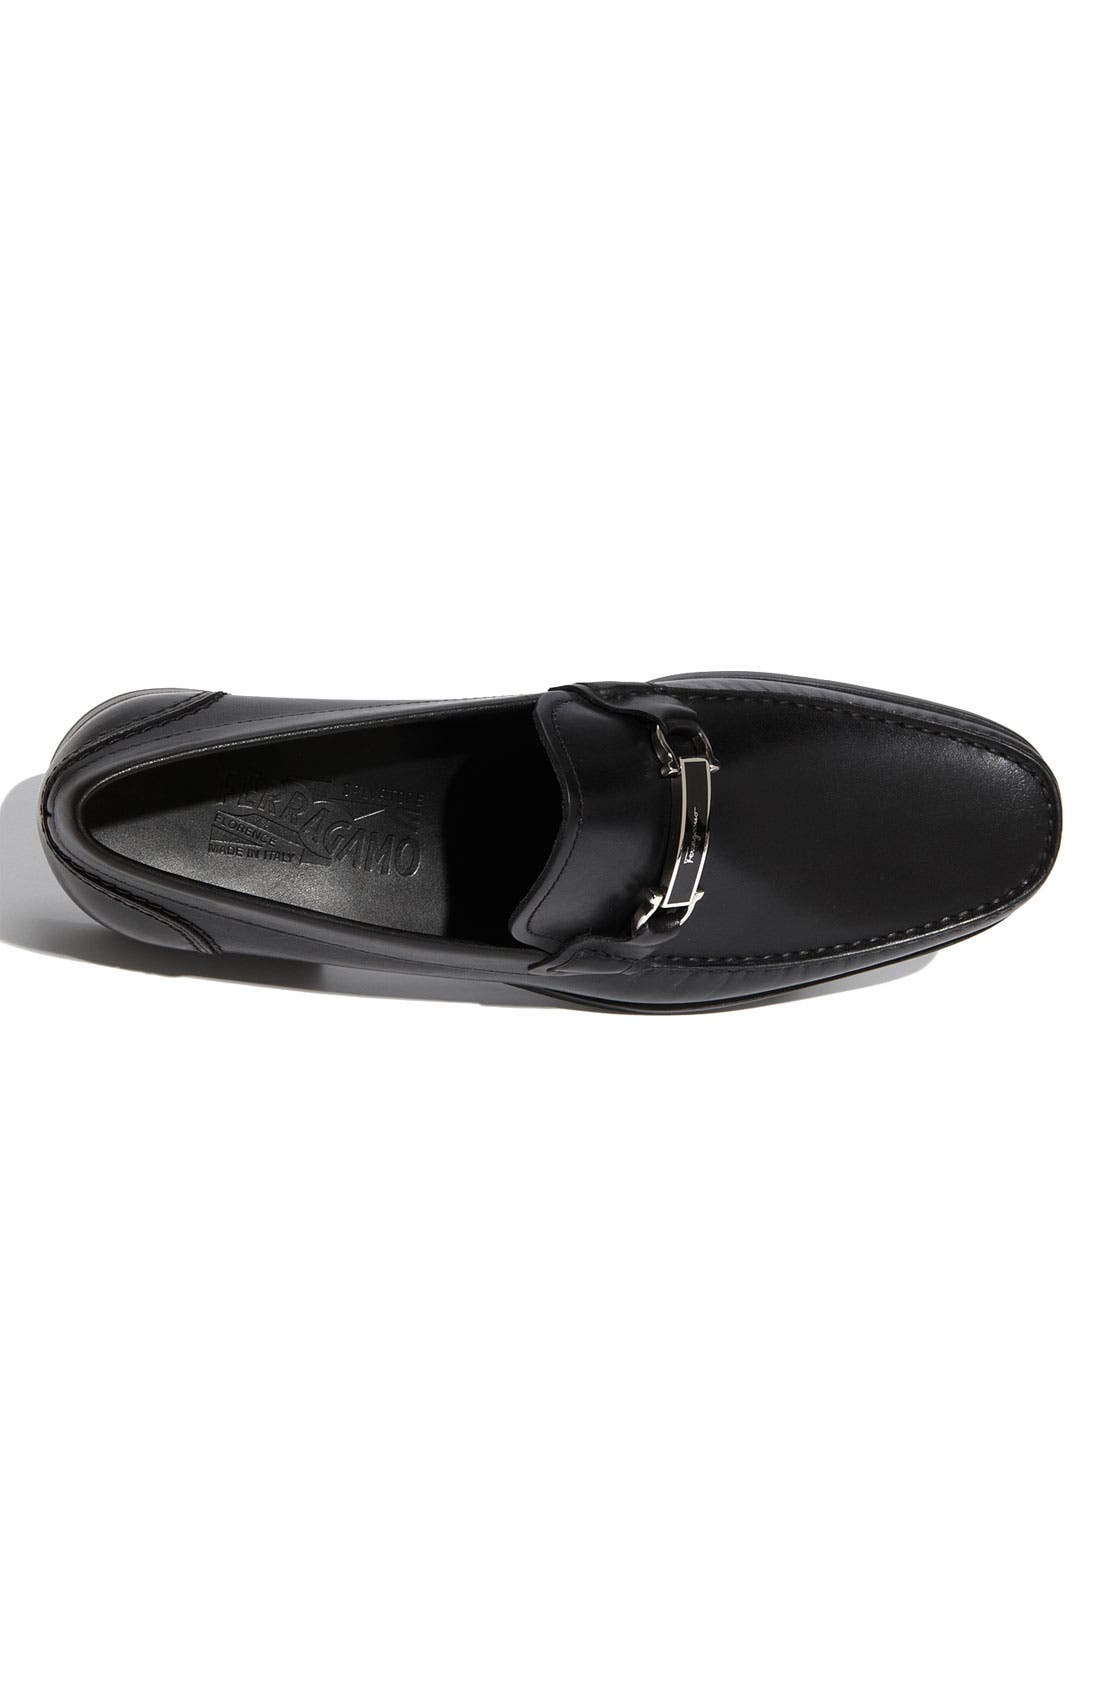 Alternate Image 3  - Salvatore Ferragamo 'Bueno' Loafer